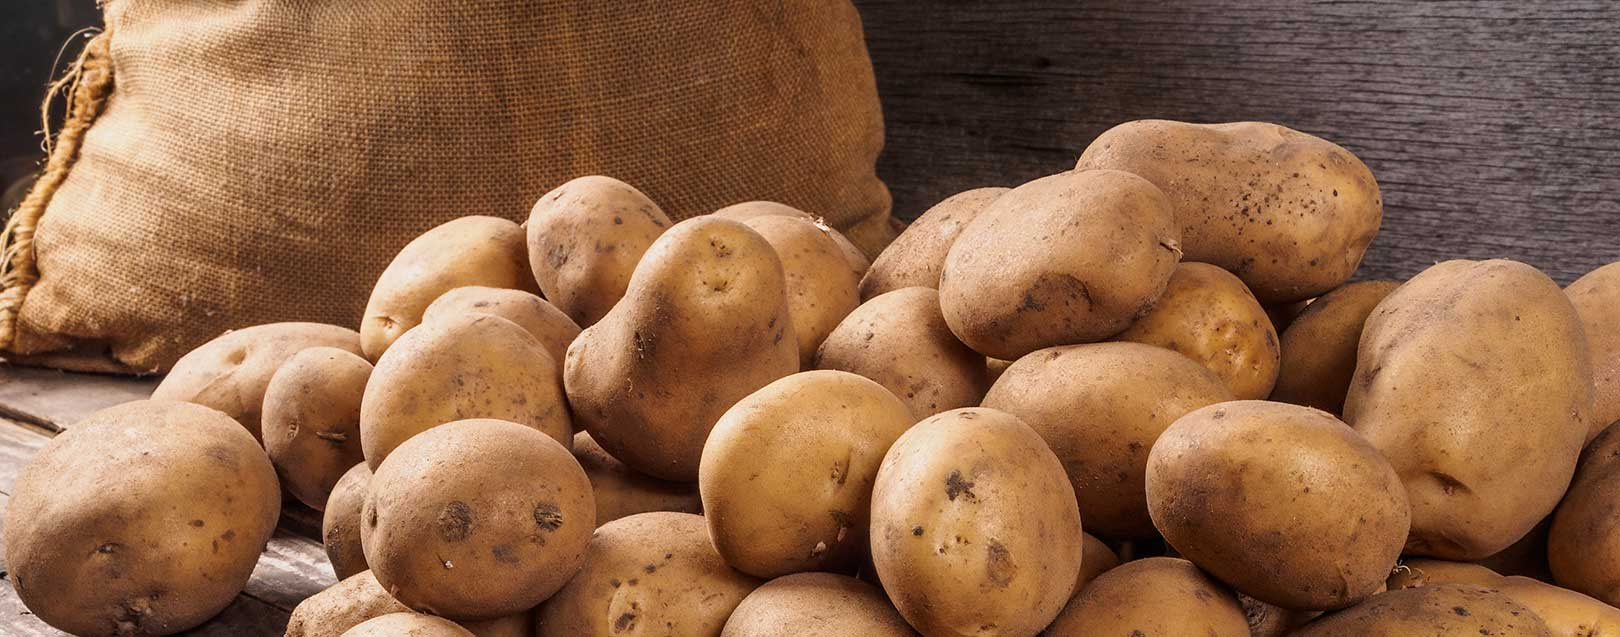 Potato production in India to be at 47 MT this year